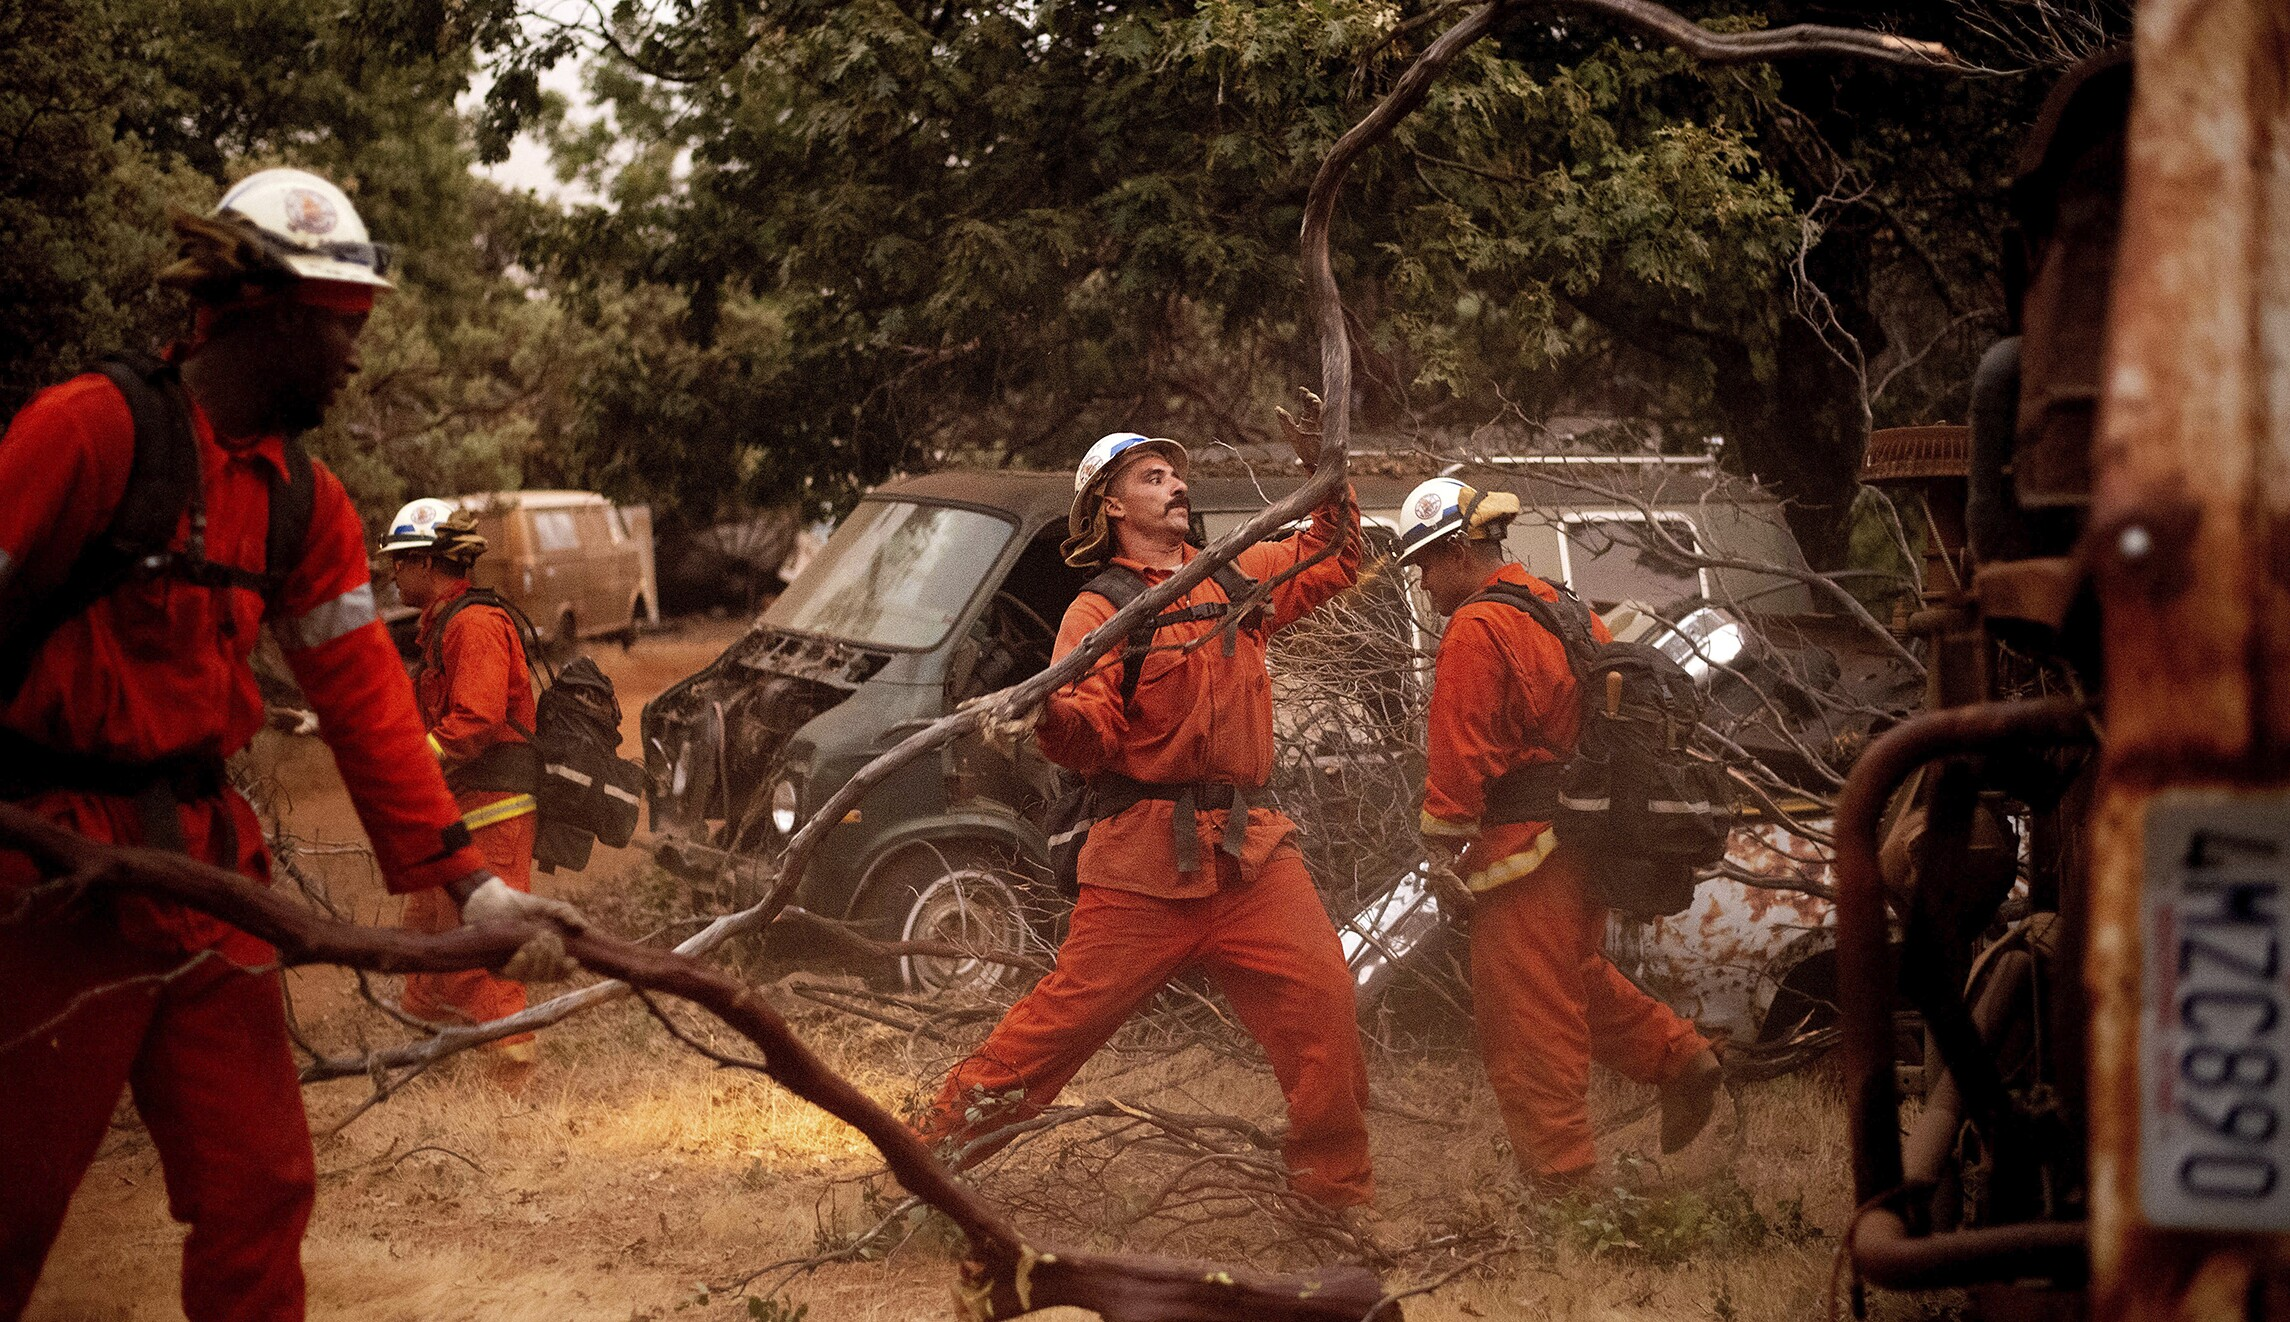 They Fought Wildfires As Inmates But California Wont Let Them